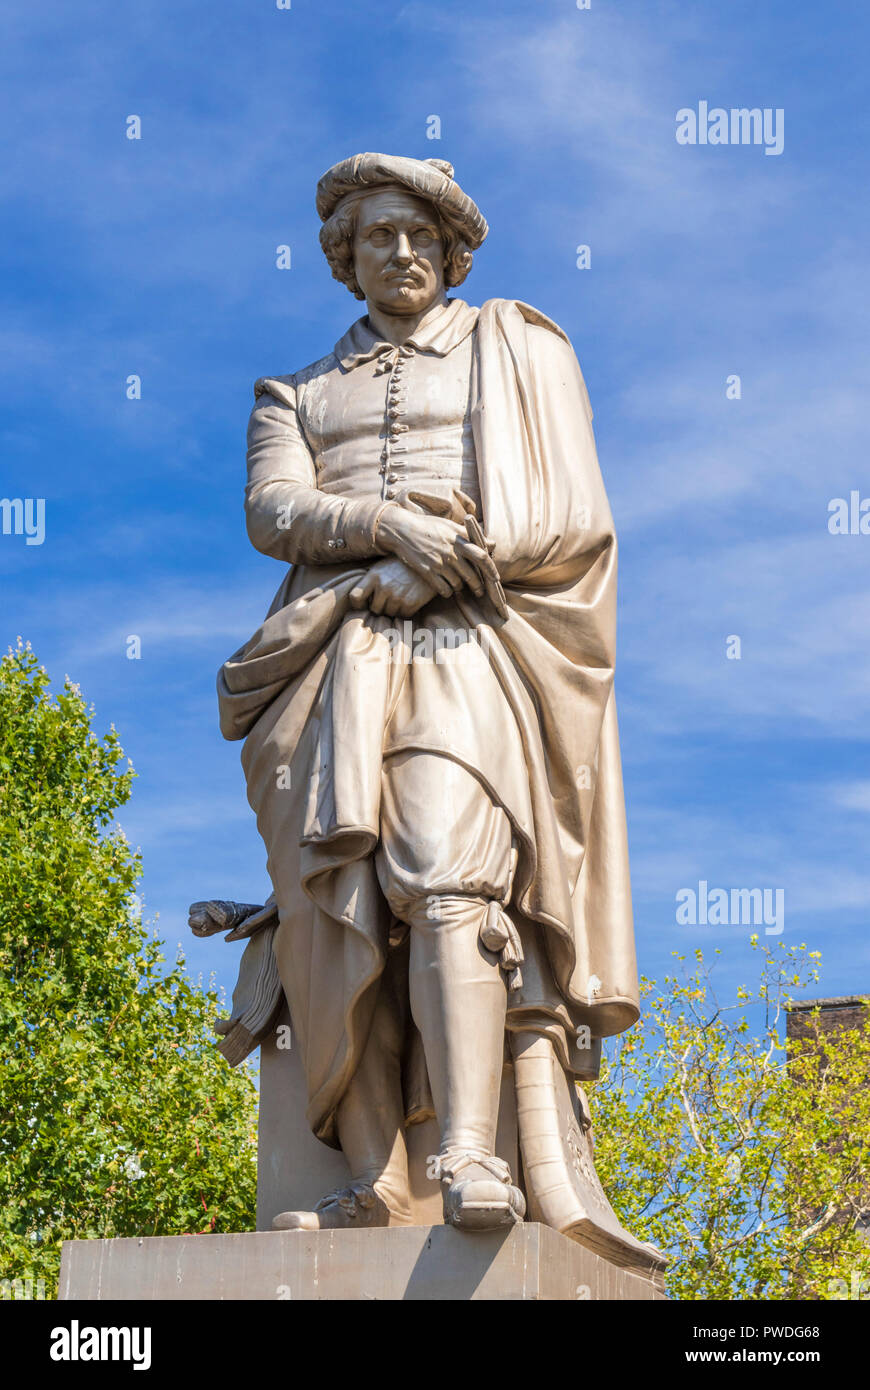 Amsterdam Holland Amsterdam Rembrandt statue part of the Rembrandt monument by Louis Royer in Rembrandt Square Rembrandtplein Amsterdam Netherlands - Stock Image